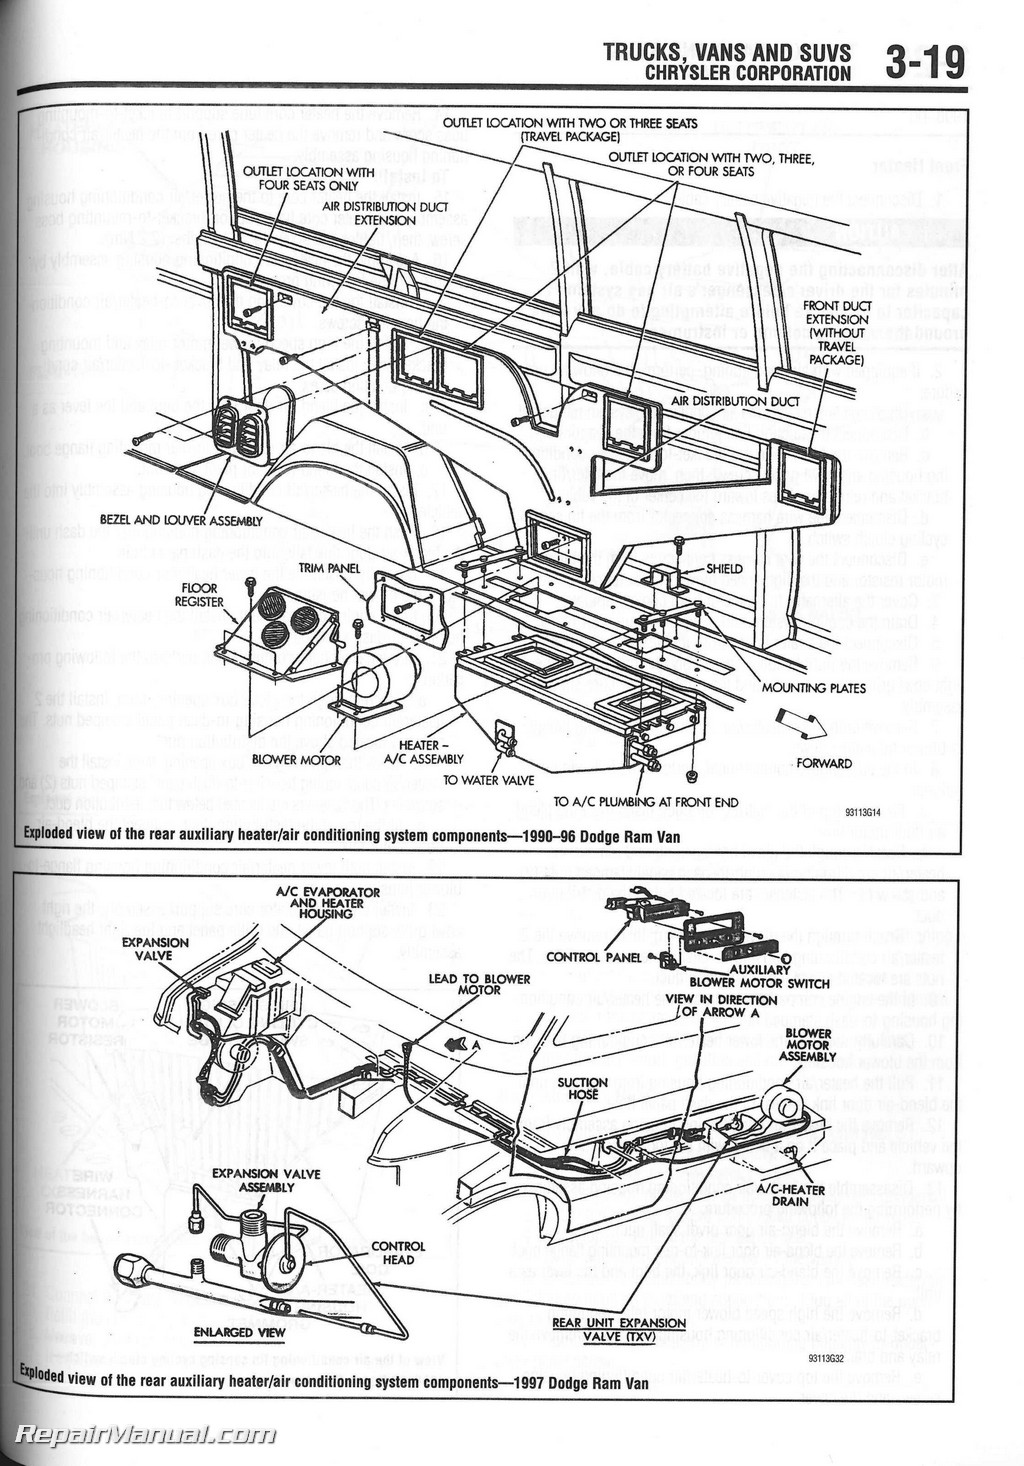 1997 Dodge Stratus Wiring Diagram Chilton 1990 2000 Heater Core Installation Manual